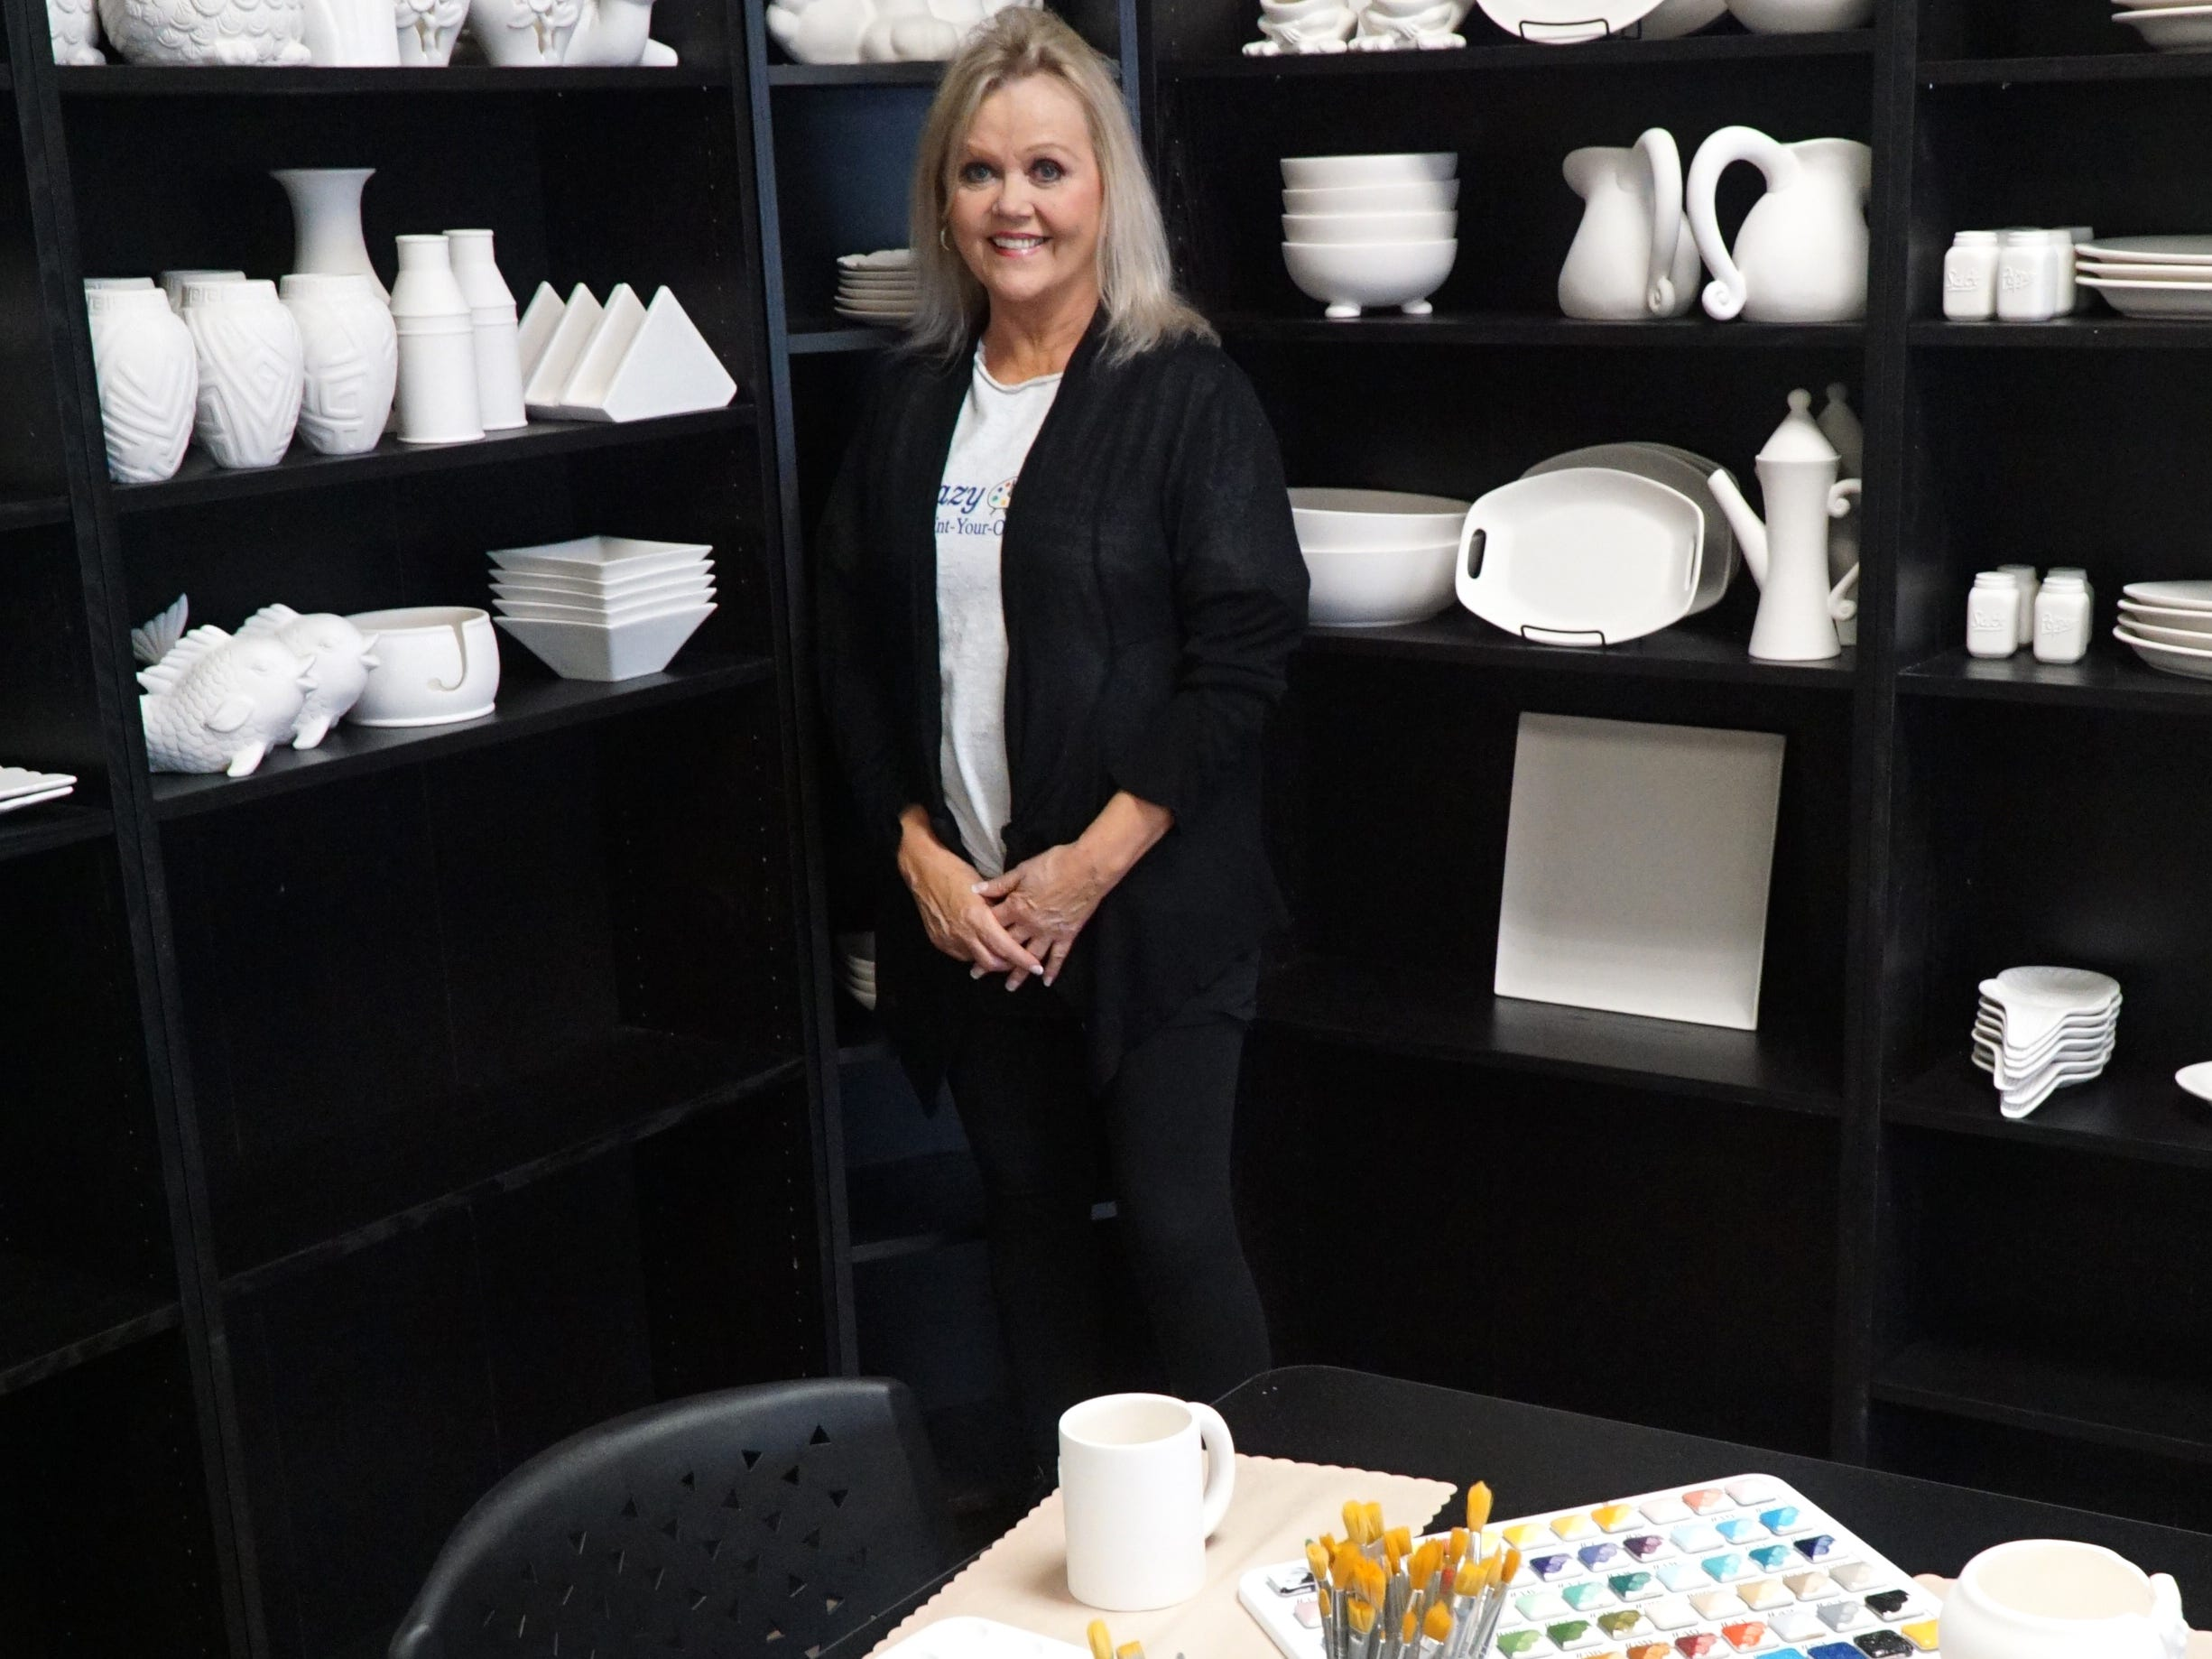 Jill French moved her Glazy Days pottery business to 22896 Pontiac Trail so that she and her guests have more room to stretch out as they paint their ceramic wares.